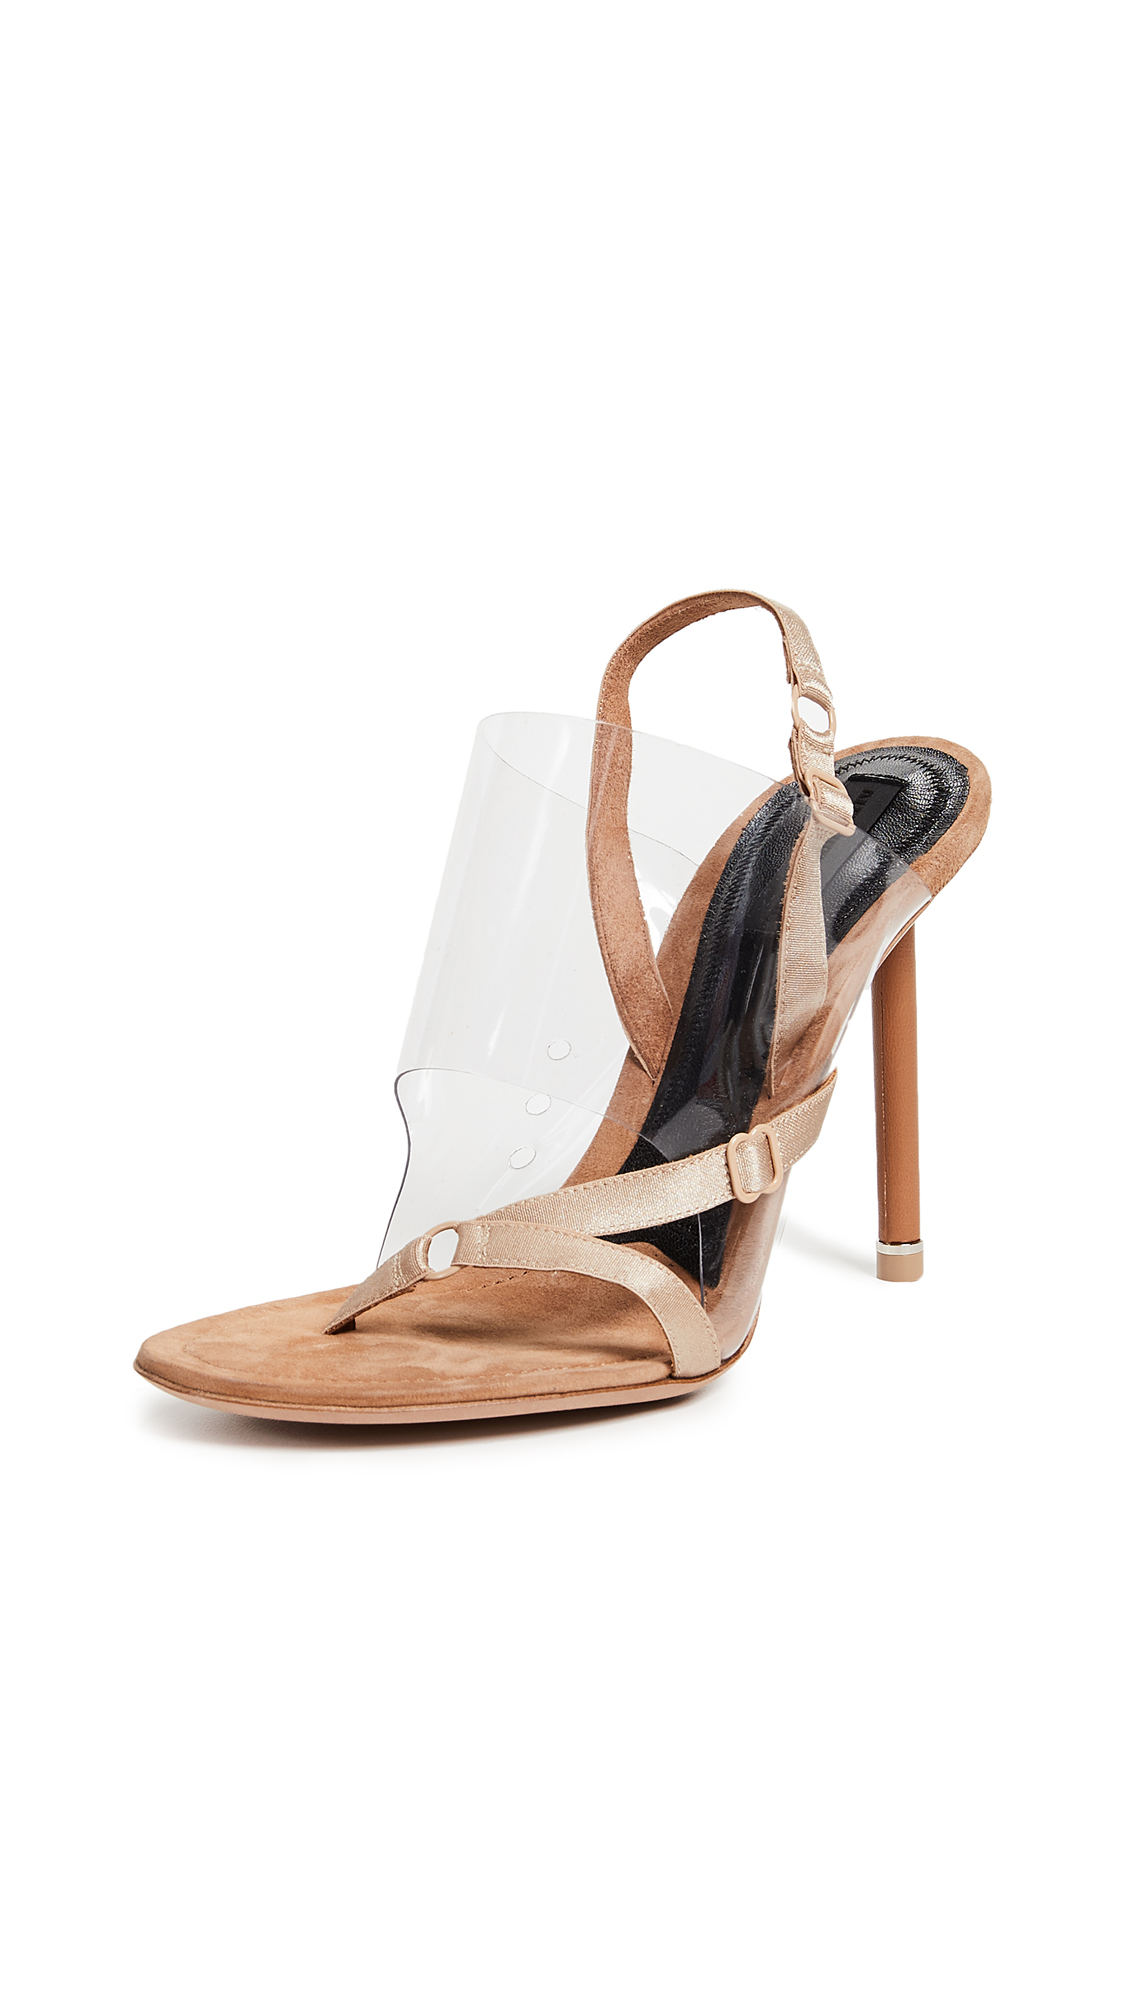 Alexander Wang Kaia High Heel Sandals - Nude